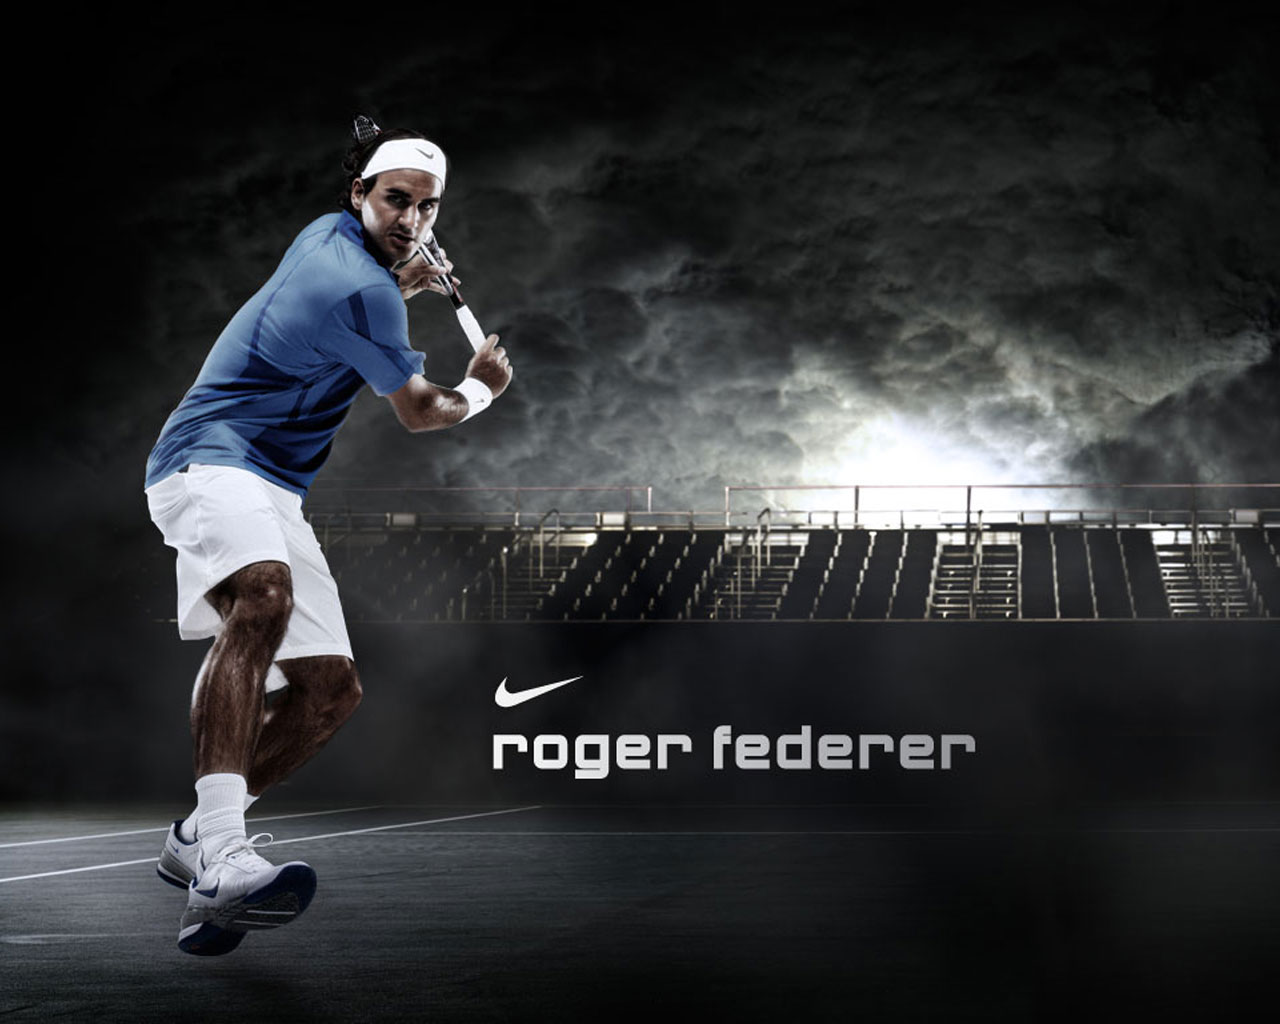 plays sports roger federer wallpaper 2010 1280x1024